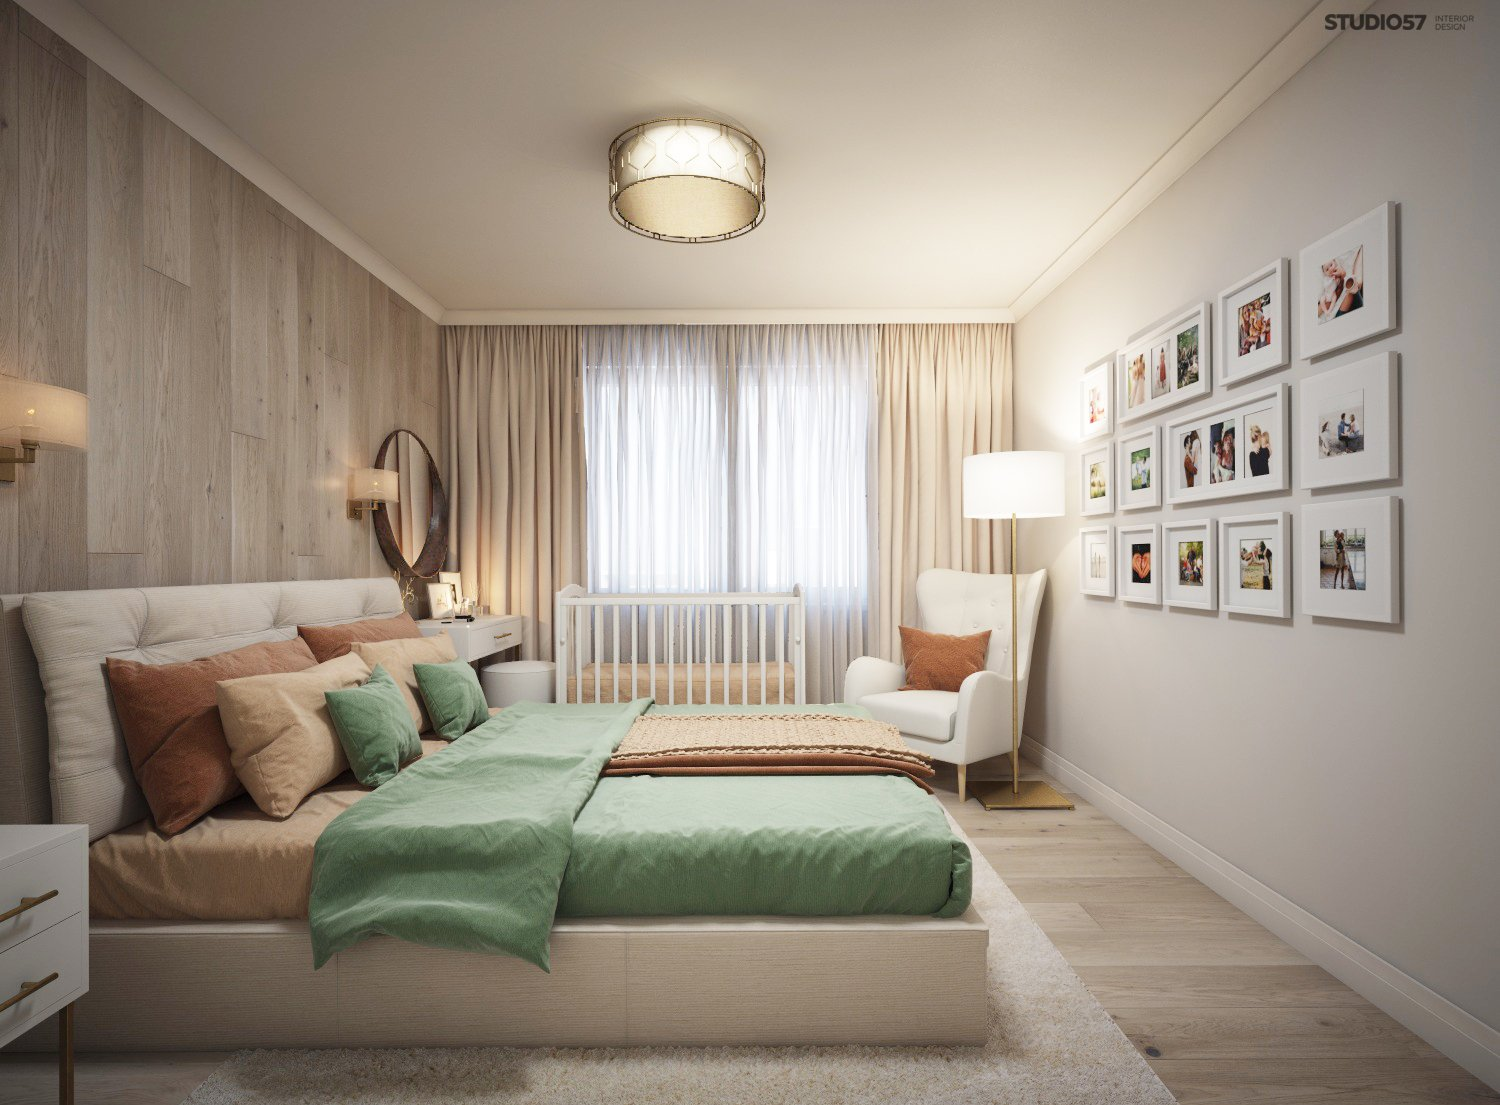 Picture bedroom in warm colors